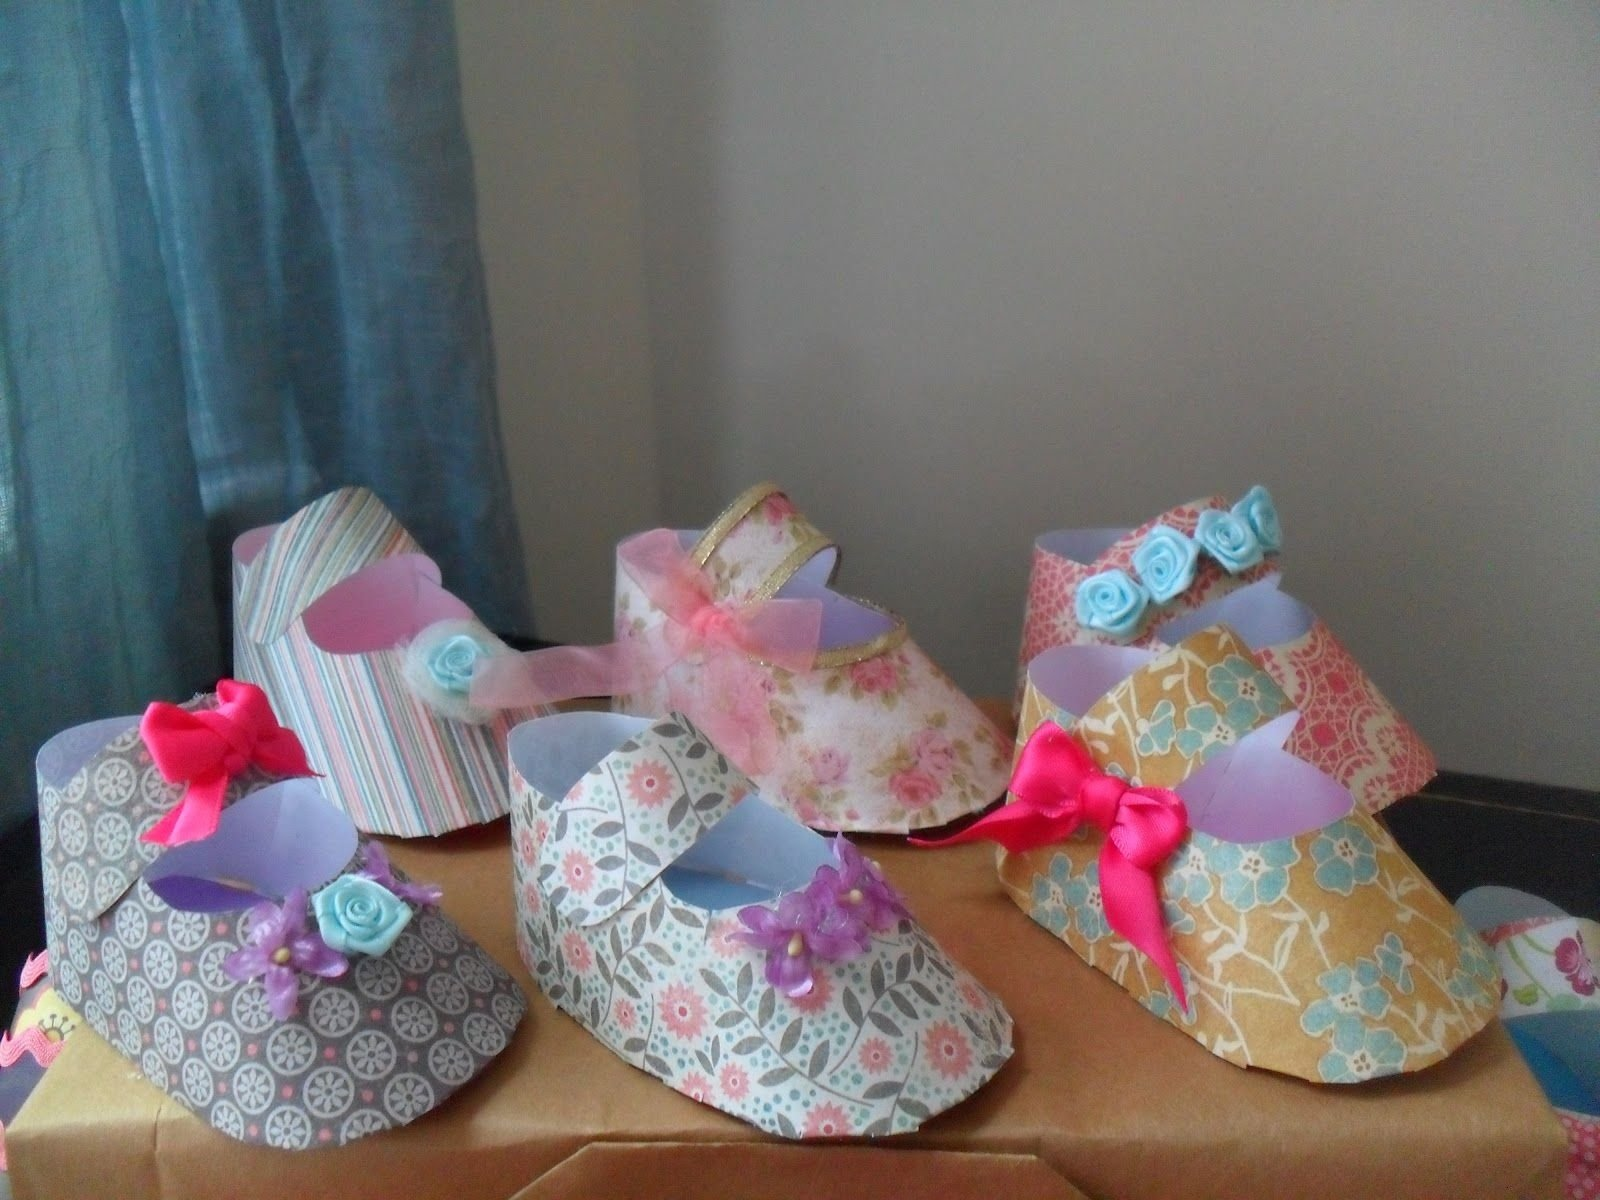 10 Attractive Do It Yourself Baby Shower Favors Ideas self made baby shower decorations lostmama shabby chic baby 2020